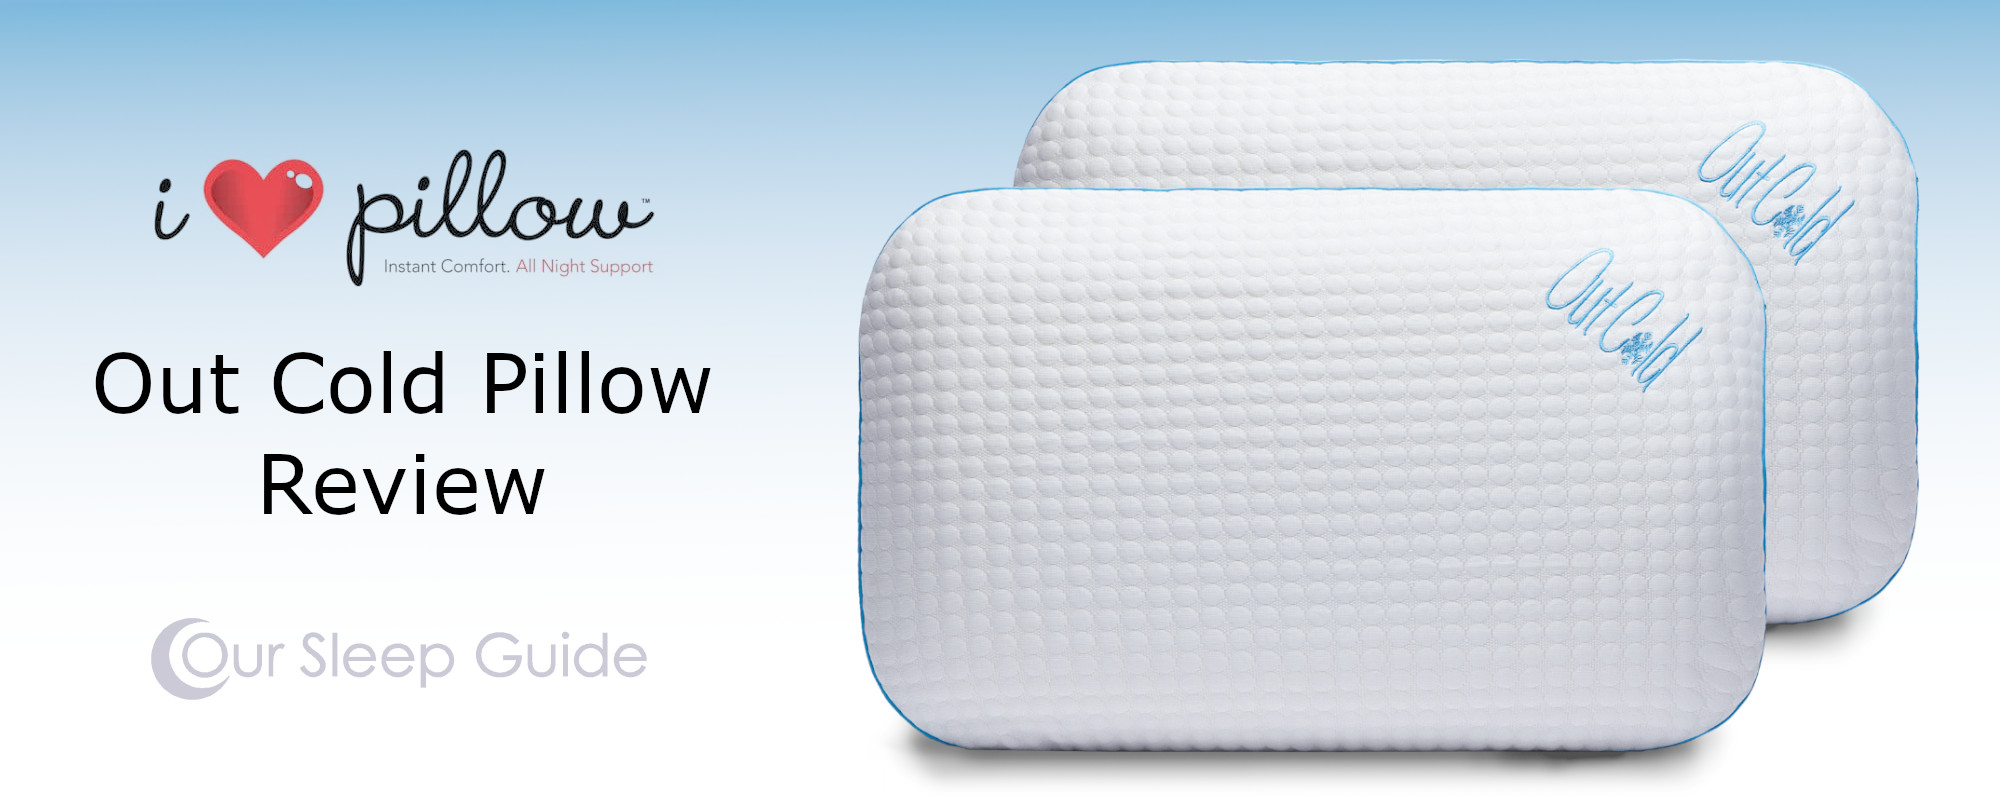 out_cold_pillow_review